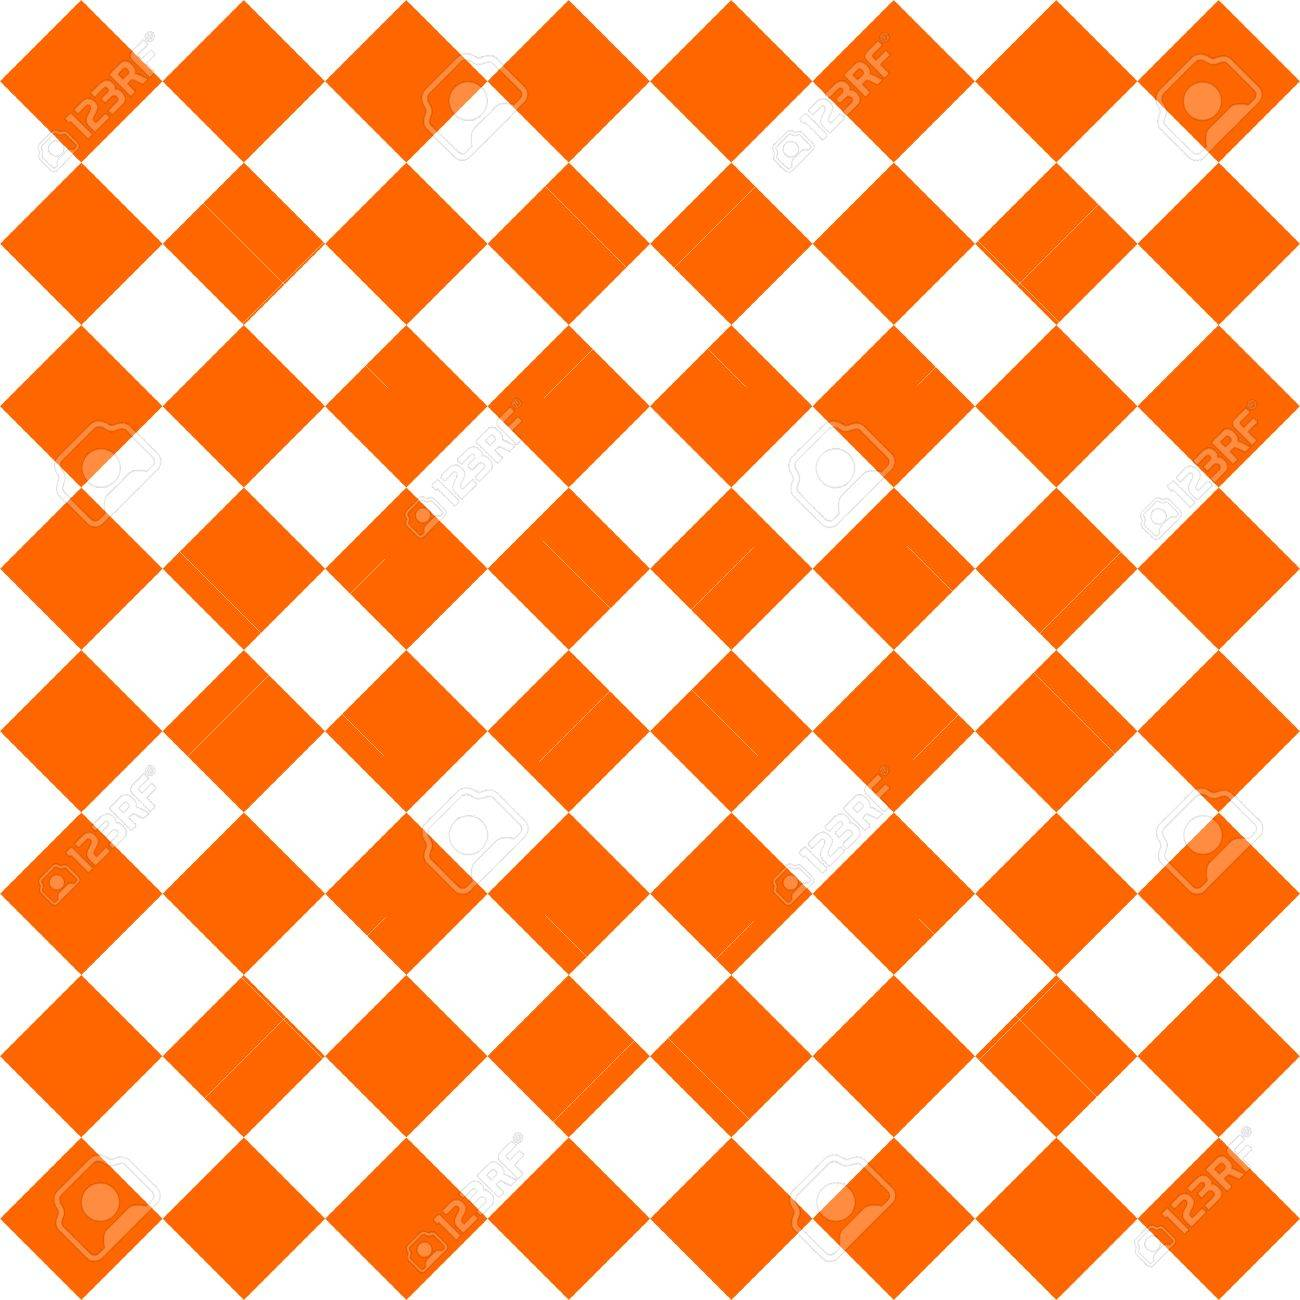 Checkered Tile Pattern Or Orange And White Wallpaper Background Stock Vector